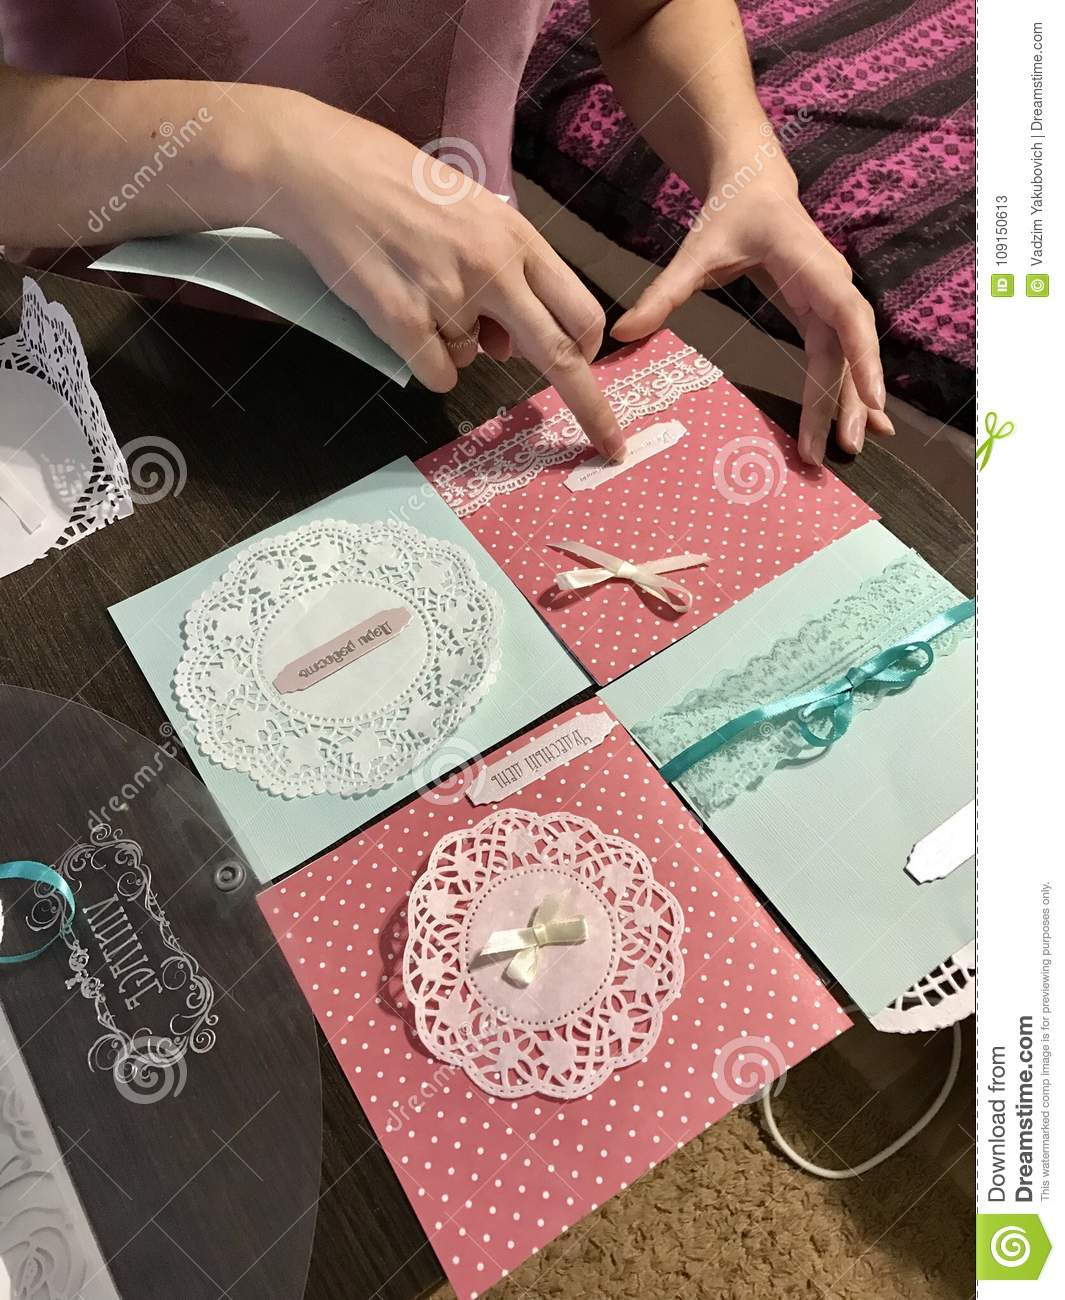 The girl is engaged in making greeting cards at home using paper royalty free stock photo download the girl is engaged in making greeting cards m4hsunfo